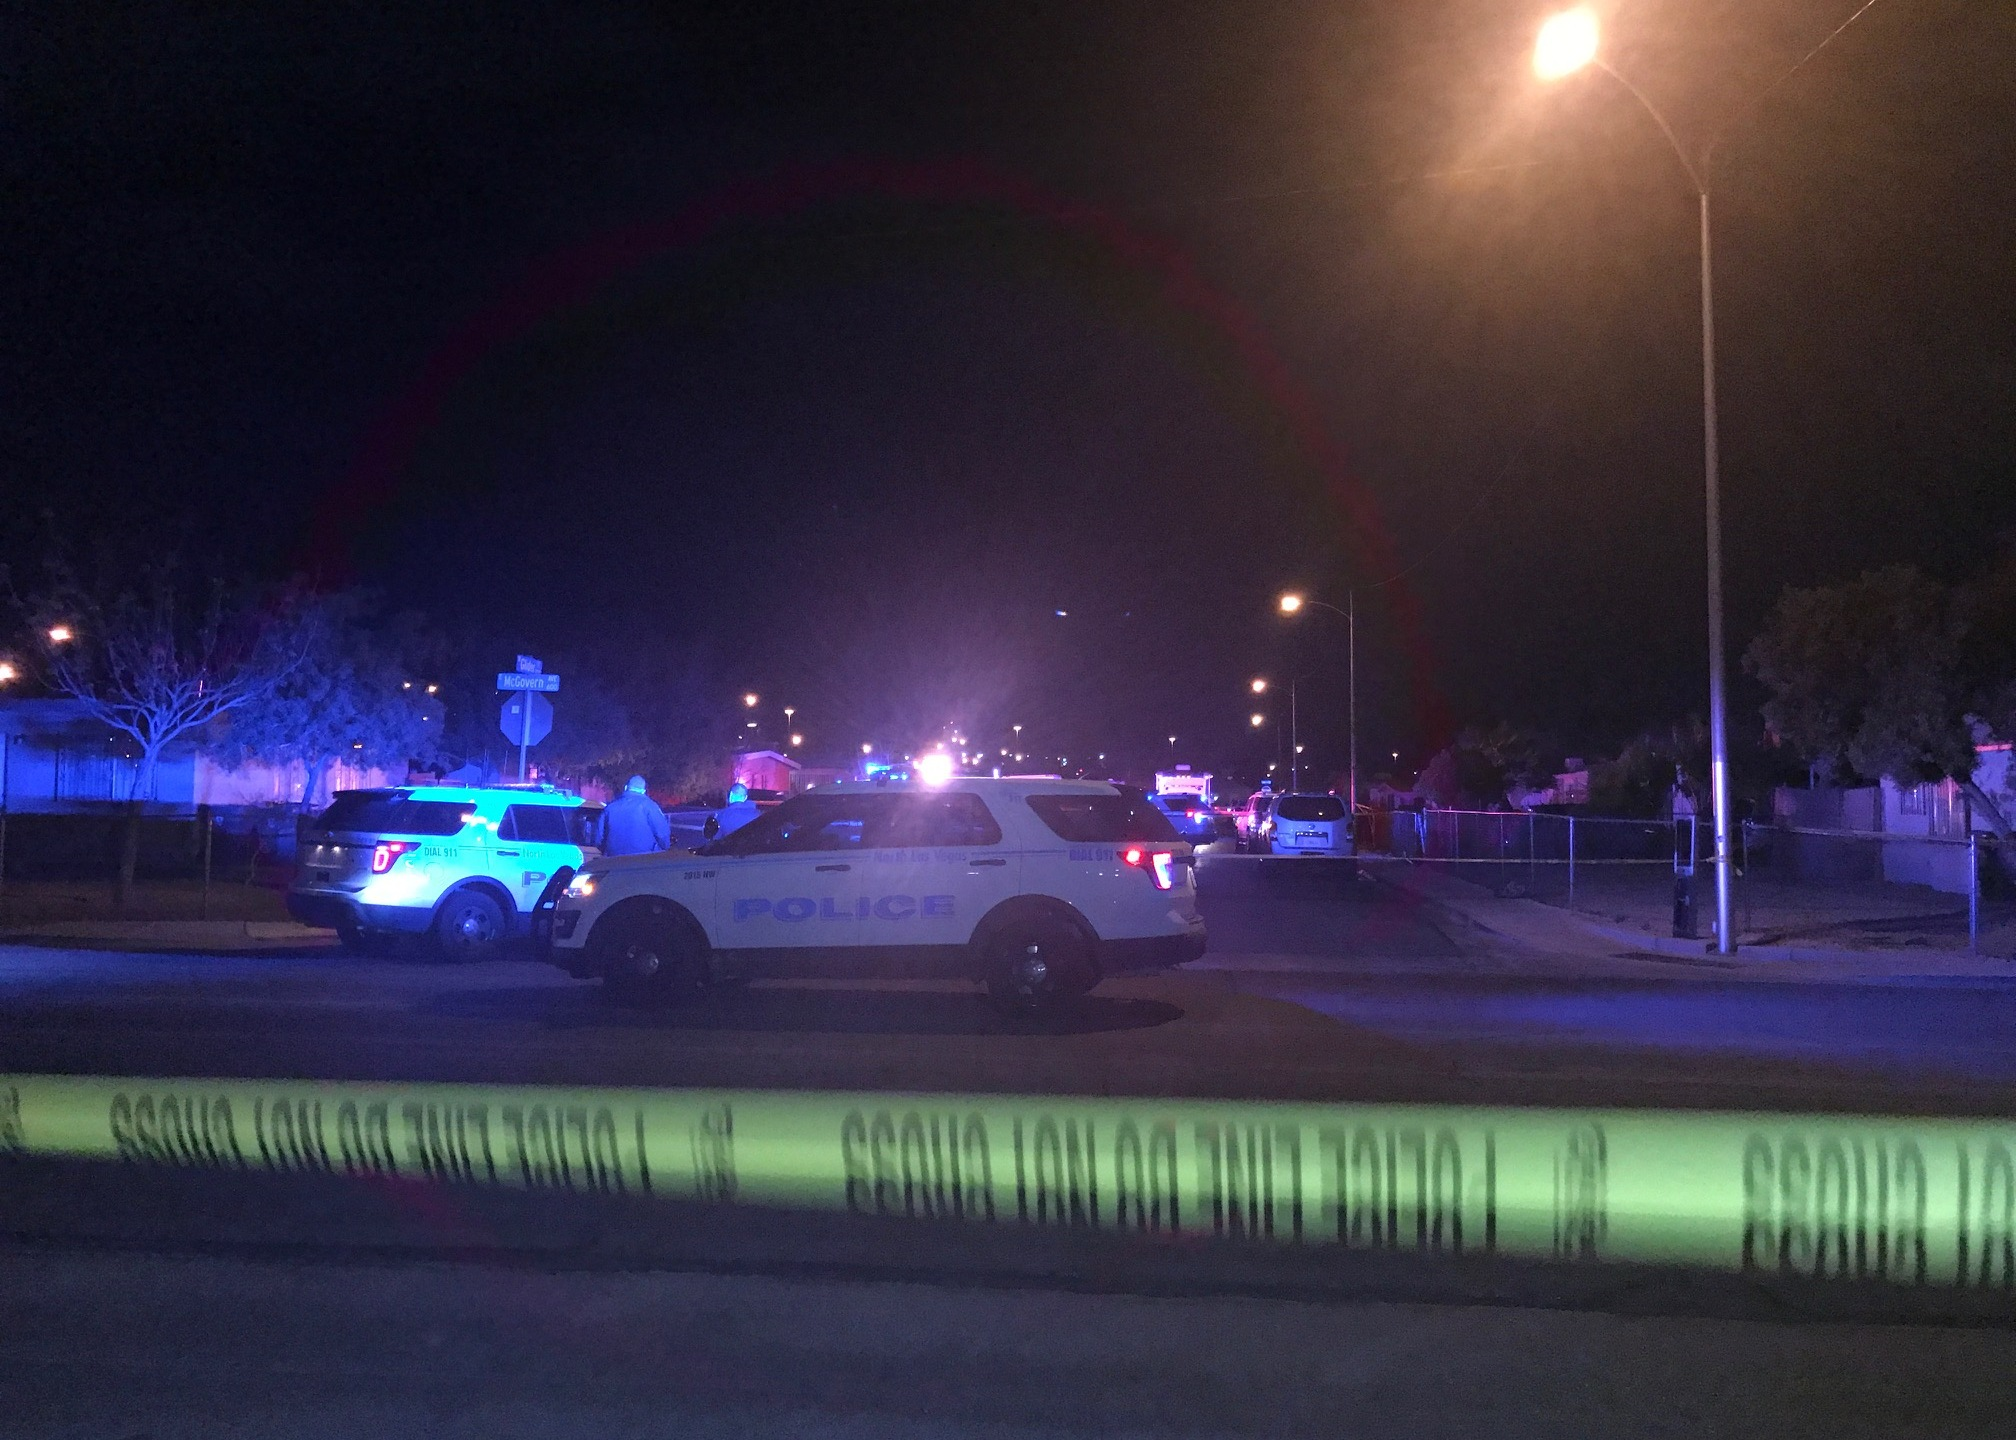 Officer_involved_shooting_near_Lake_Mead_and_5th_1548713553824.jpeg